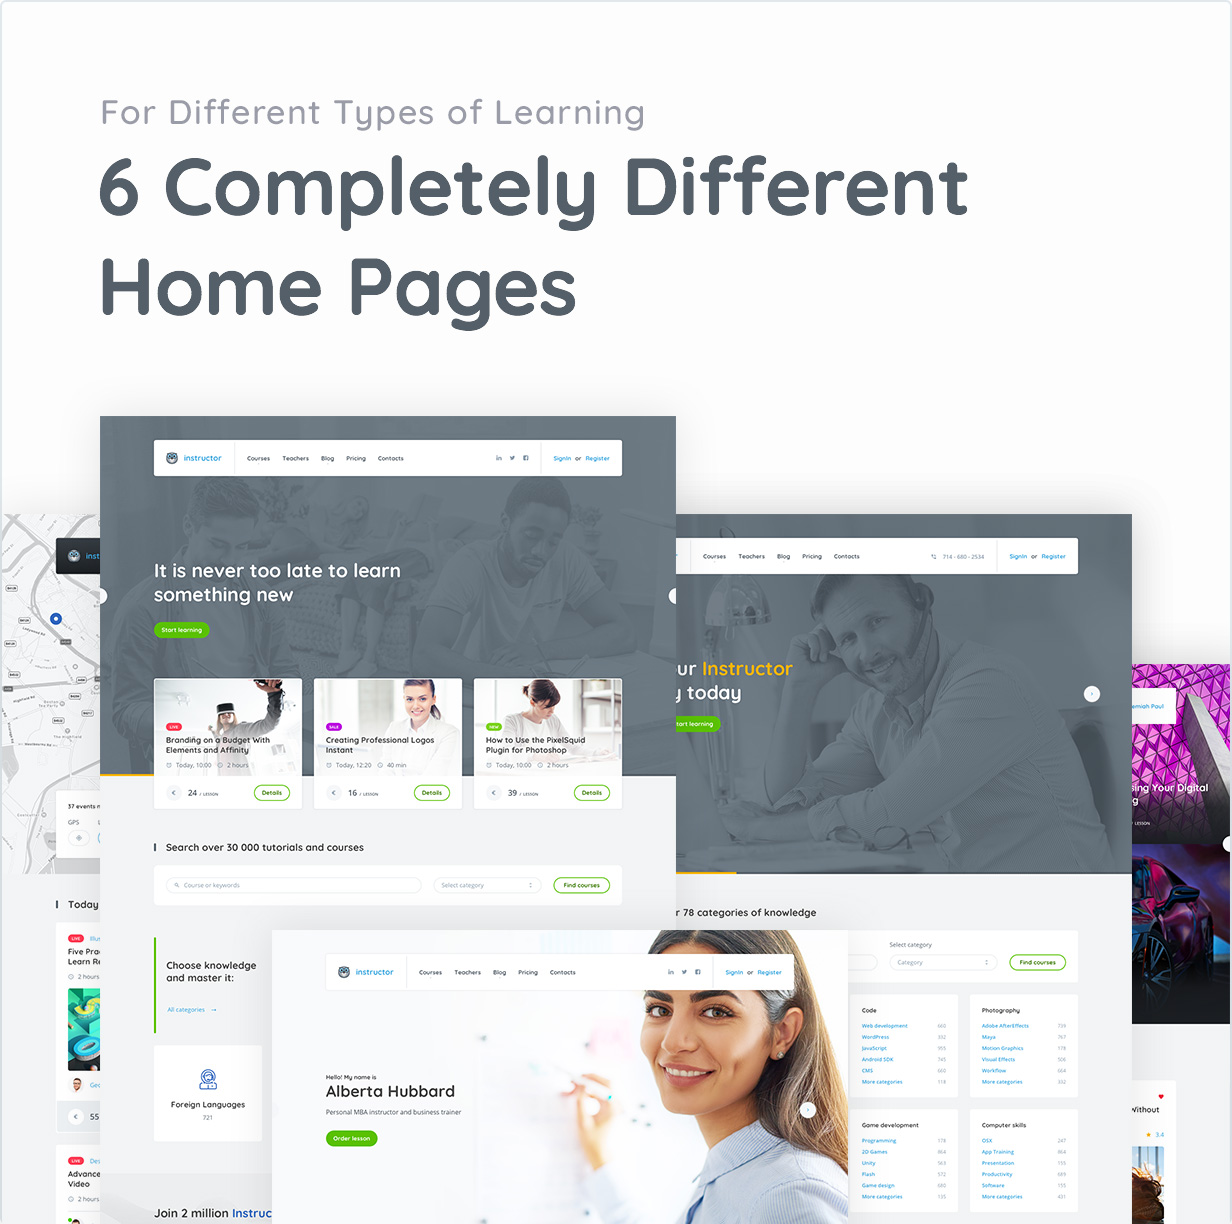 For Different Types of Learning 6 Completely Different Home Pages